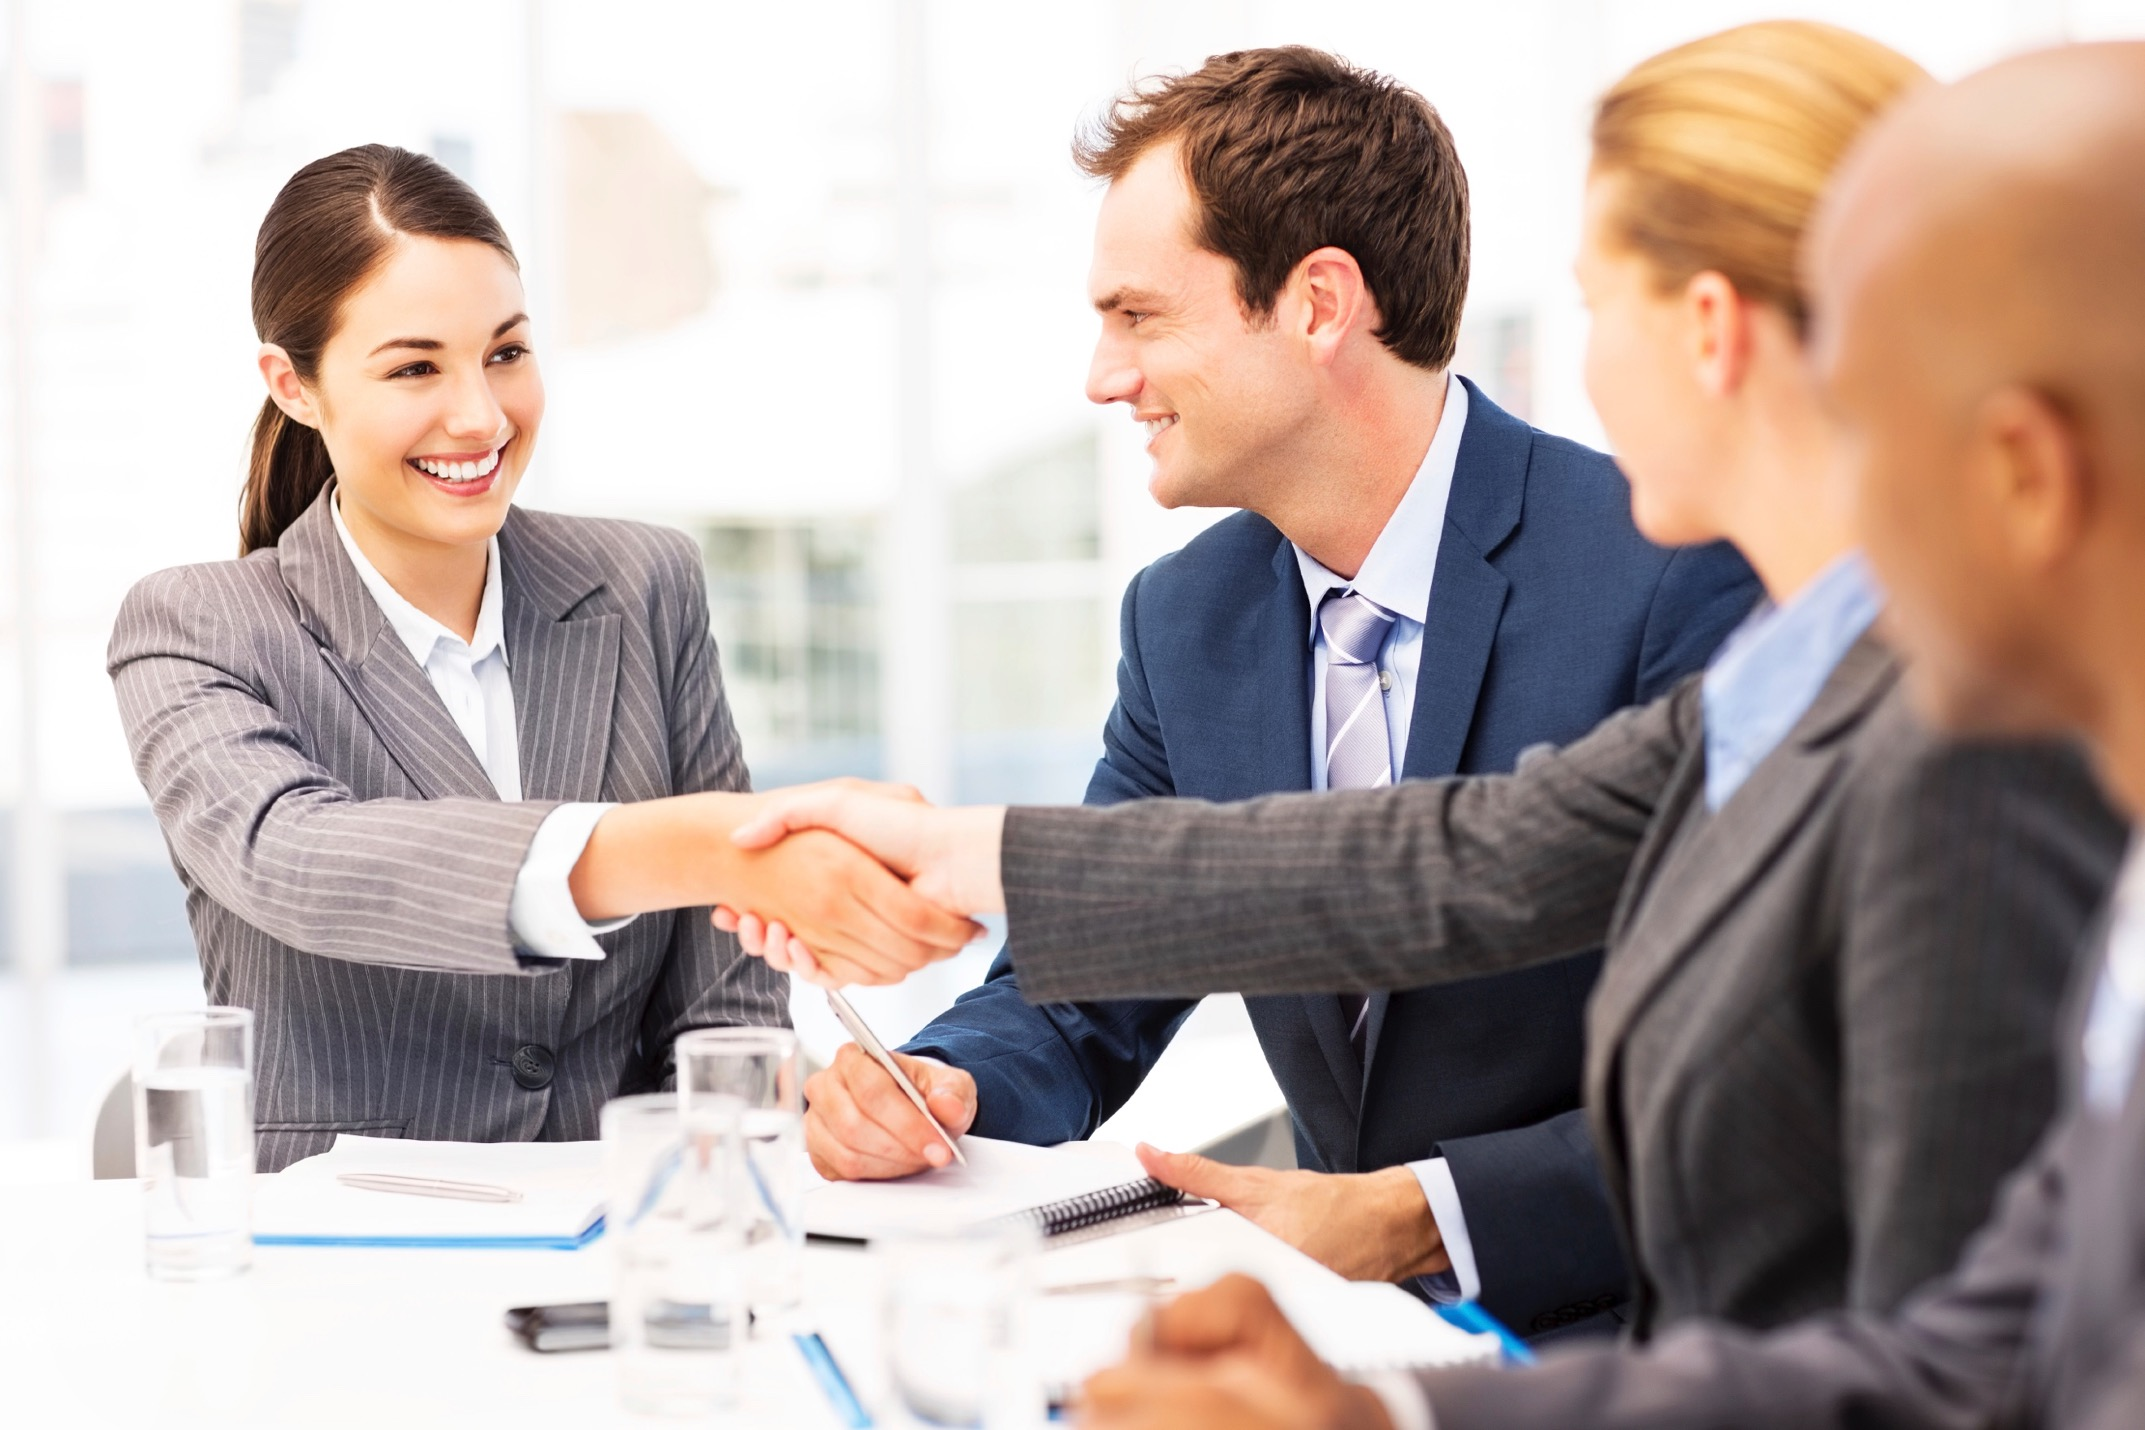 Employee Hiring Guide, how to hire the right employees. Every company hopes to find the right employee that will be with them for the long haul let us show you how.